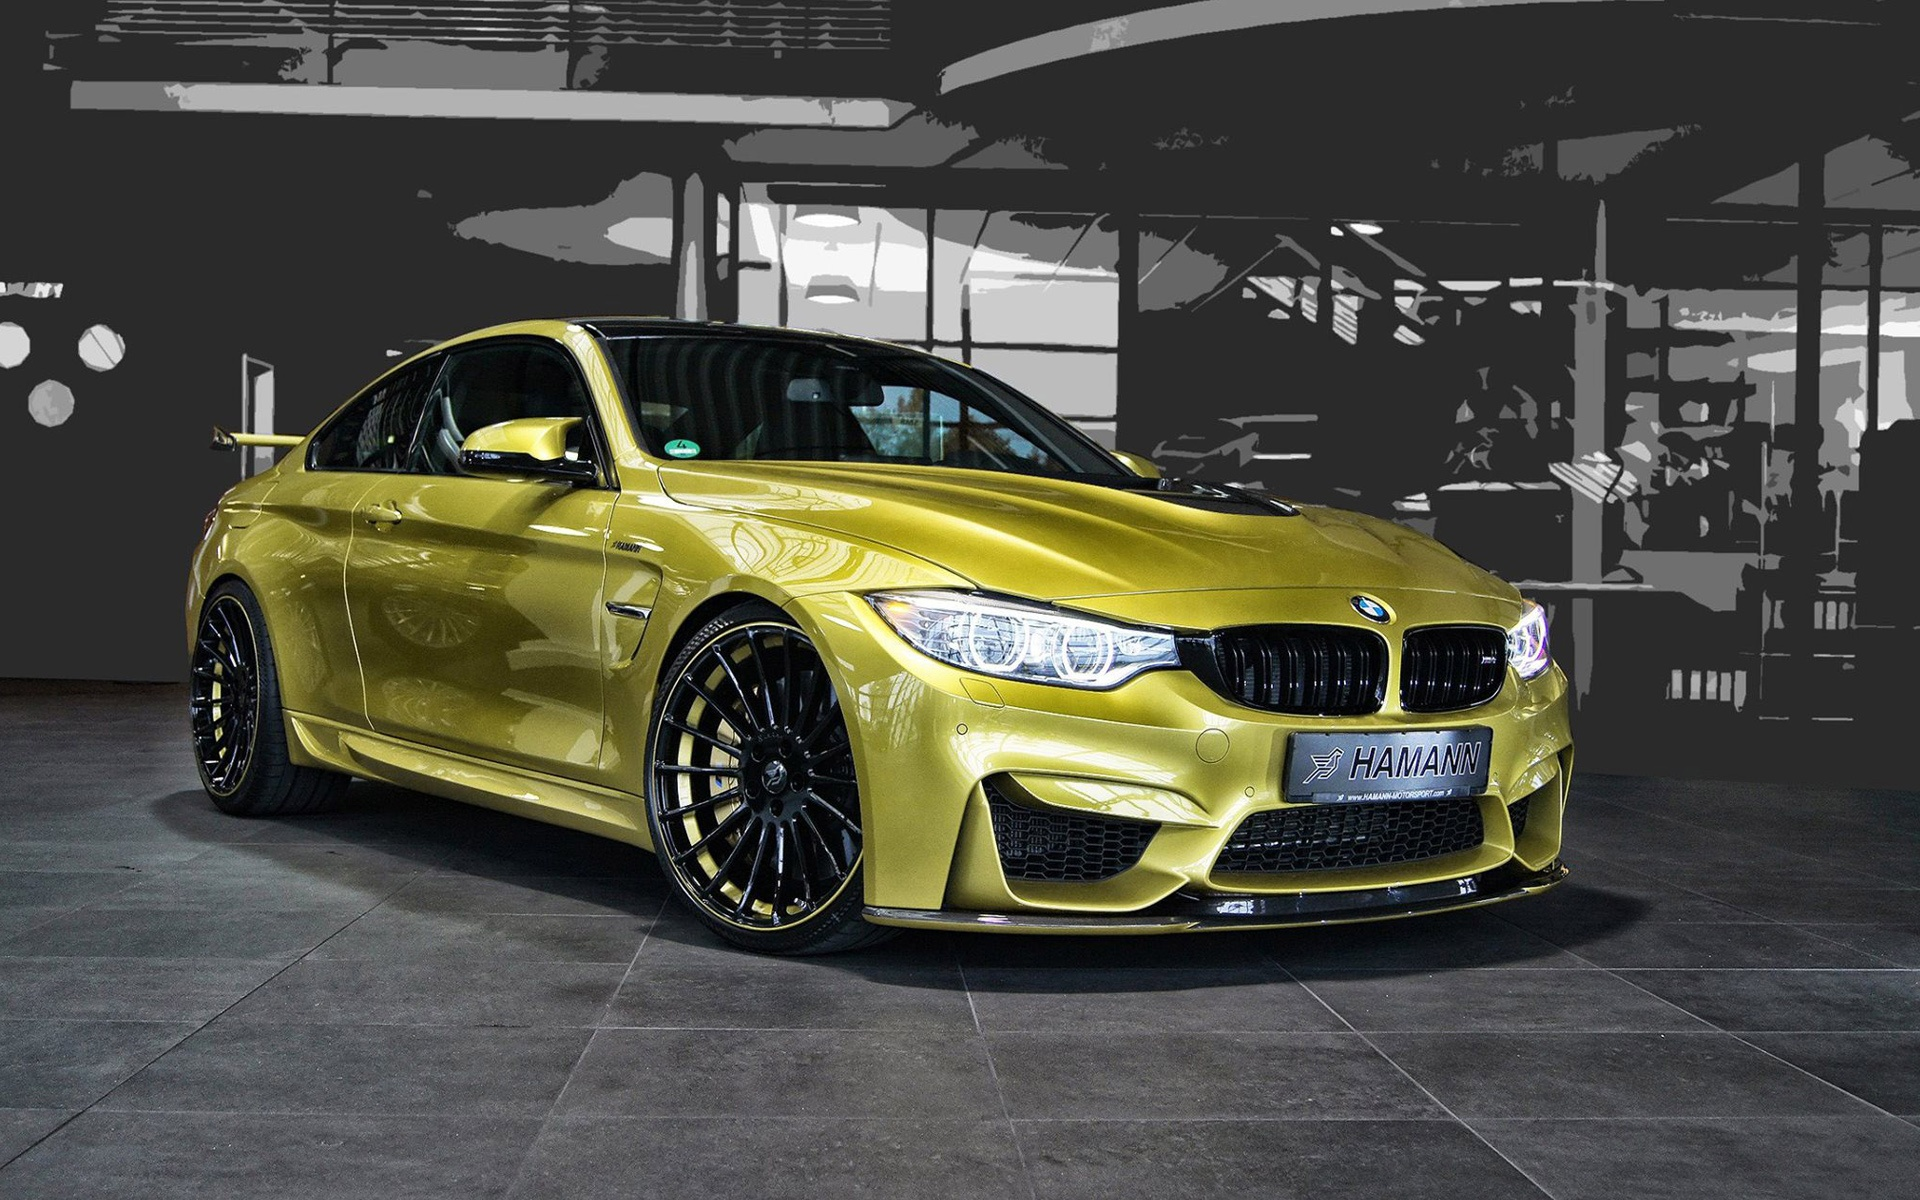 Bmw Tuning Hq Desktop Wallpaper Bmw M4 Coupe Tuned 2119998 Hd Wallpaper Backgrounds Download